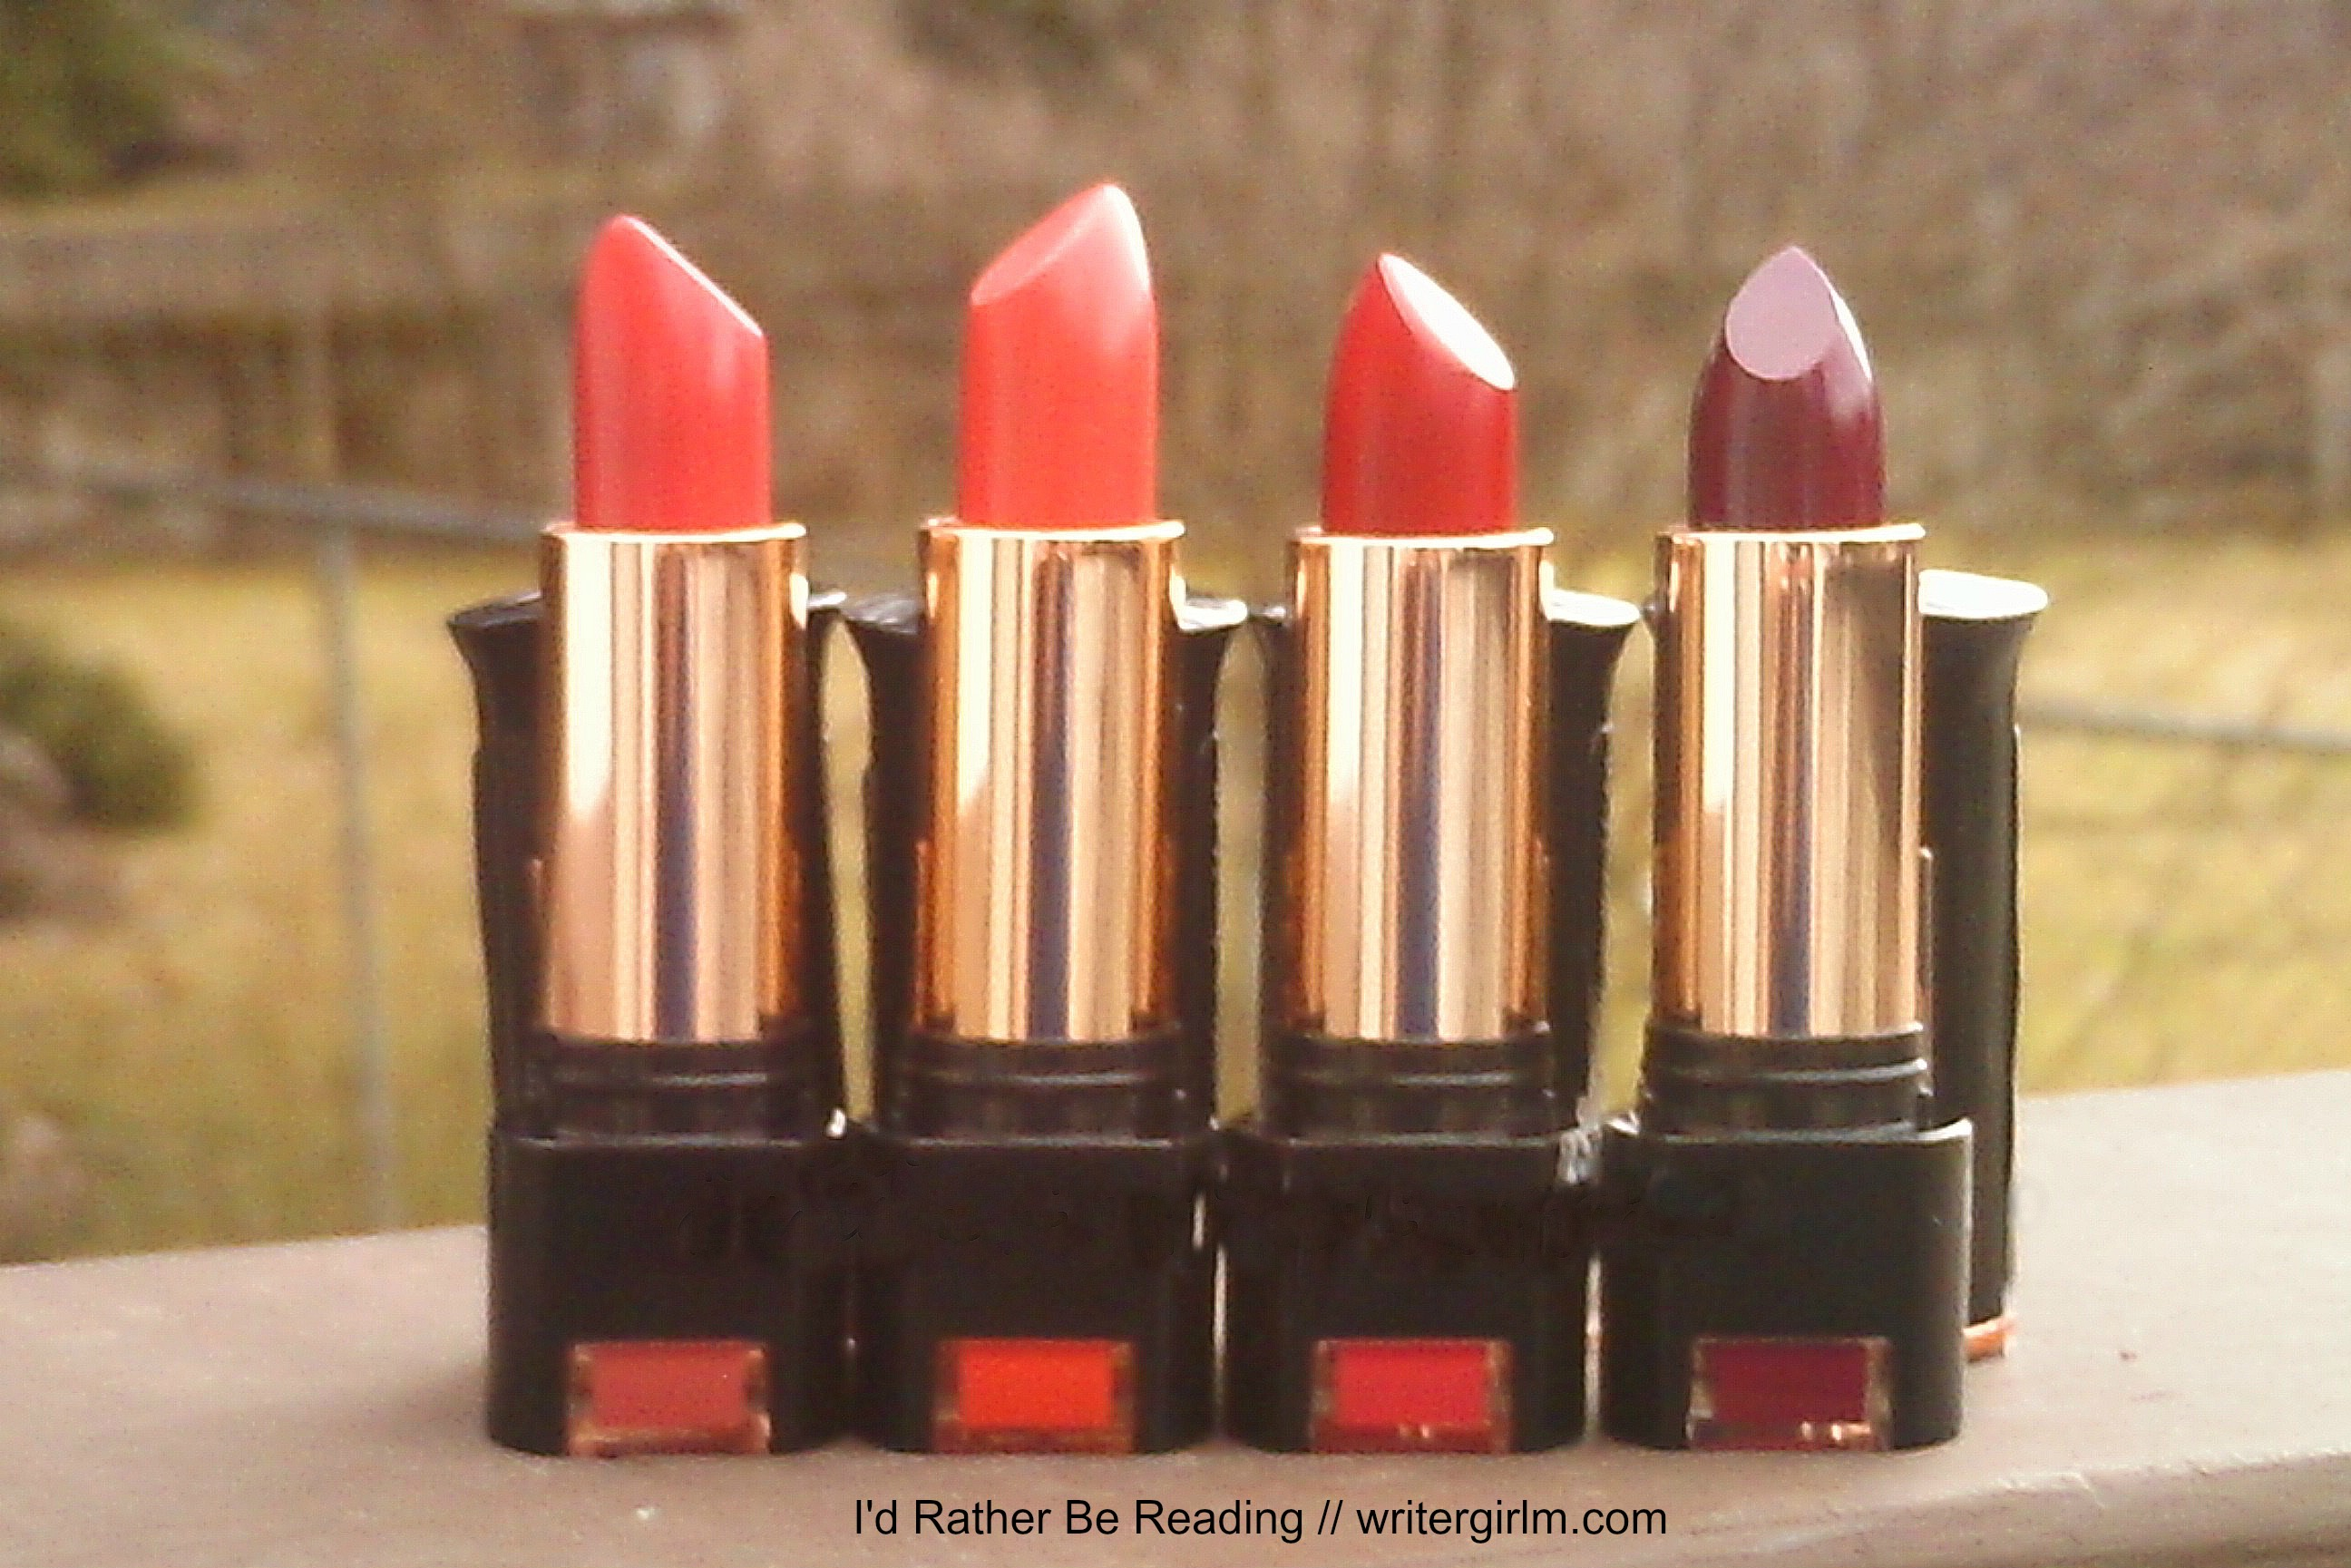 Flower Kiss Stick lipsticks